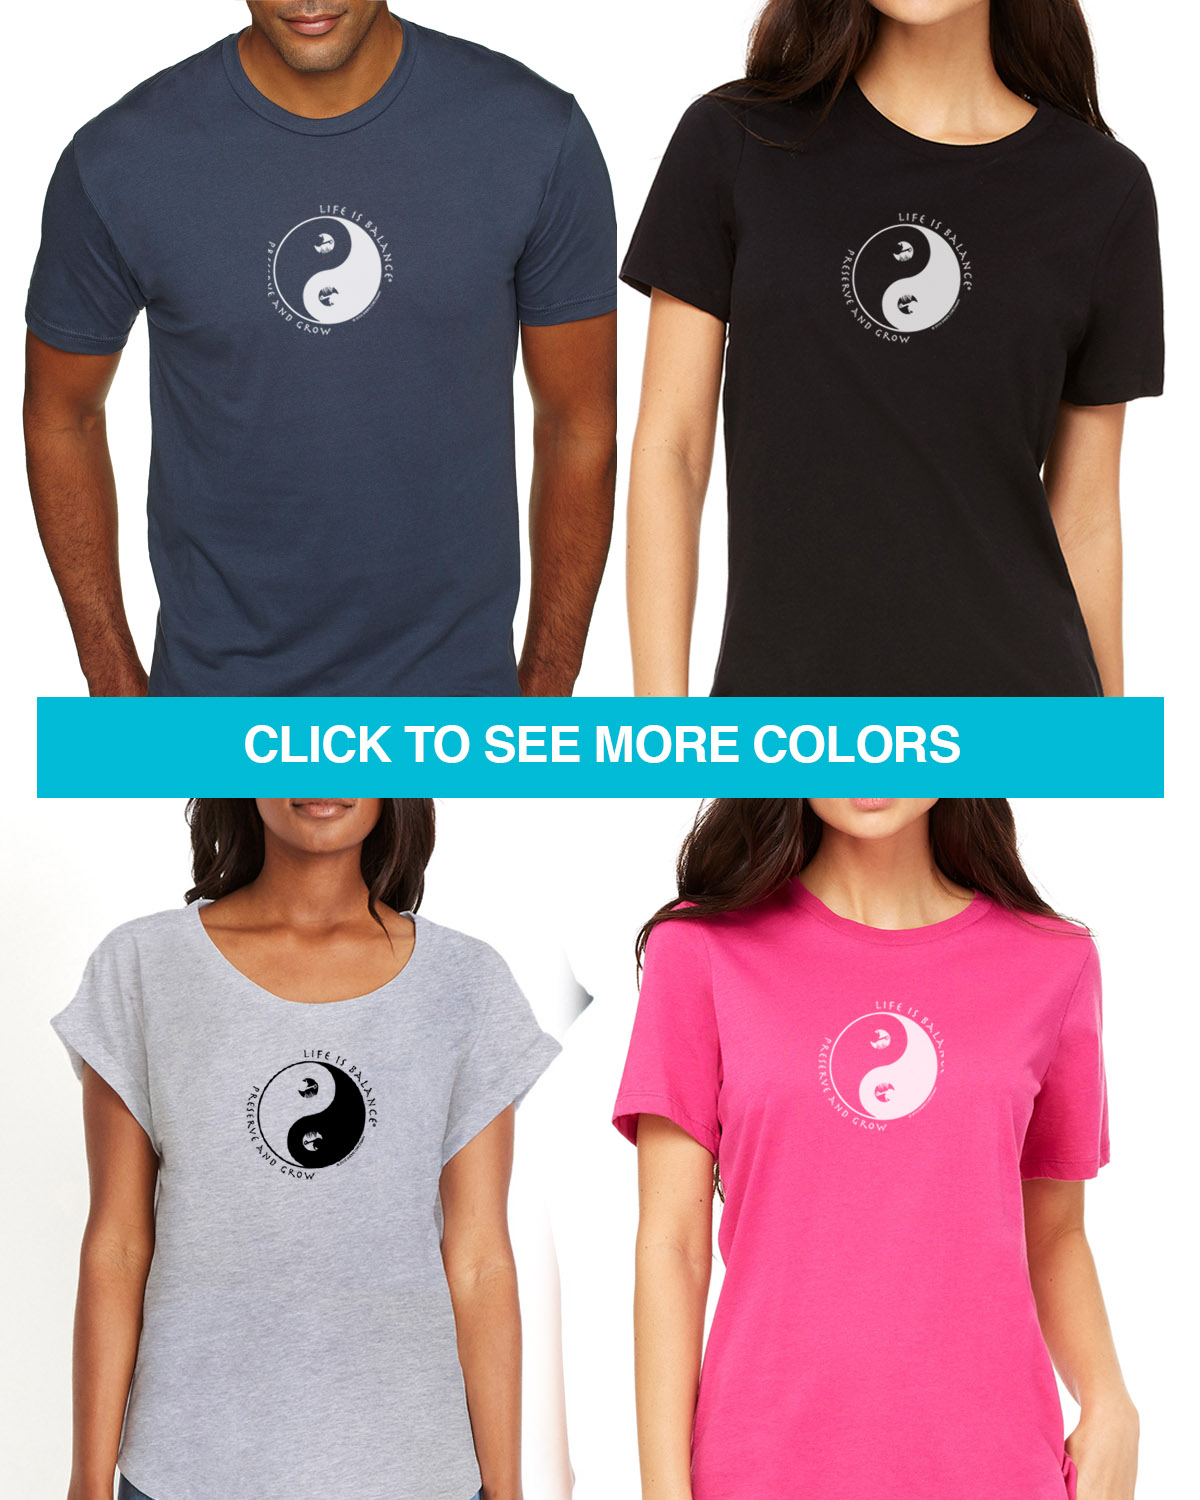 Short sleeve gardening t-shirts for Men and Women. Women's fitted styles and a unisex style for men andwomen